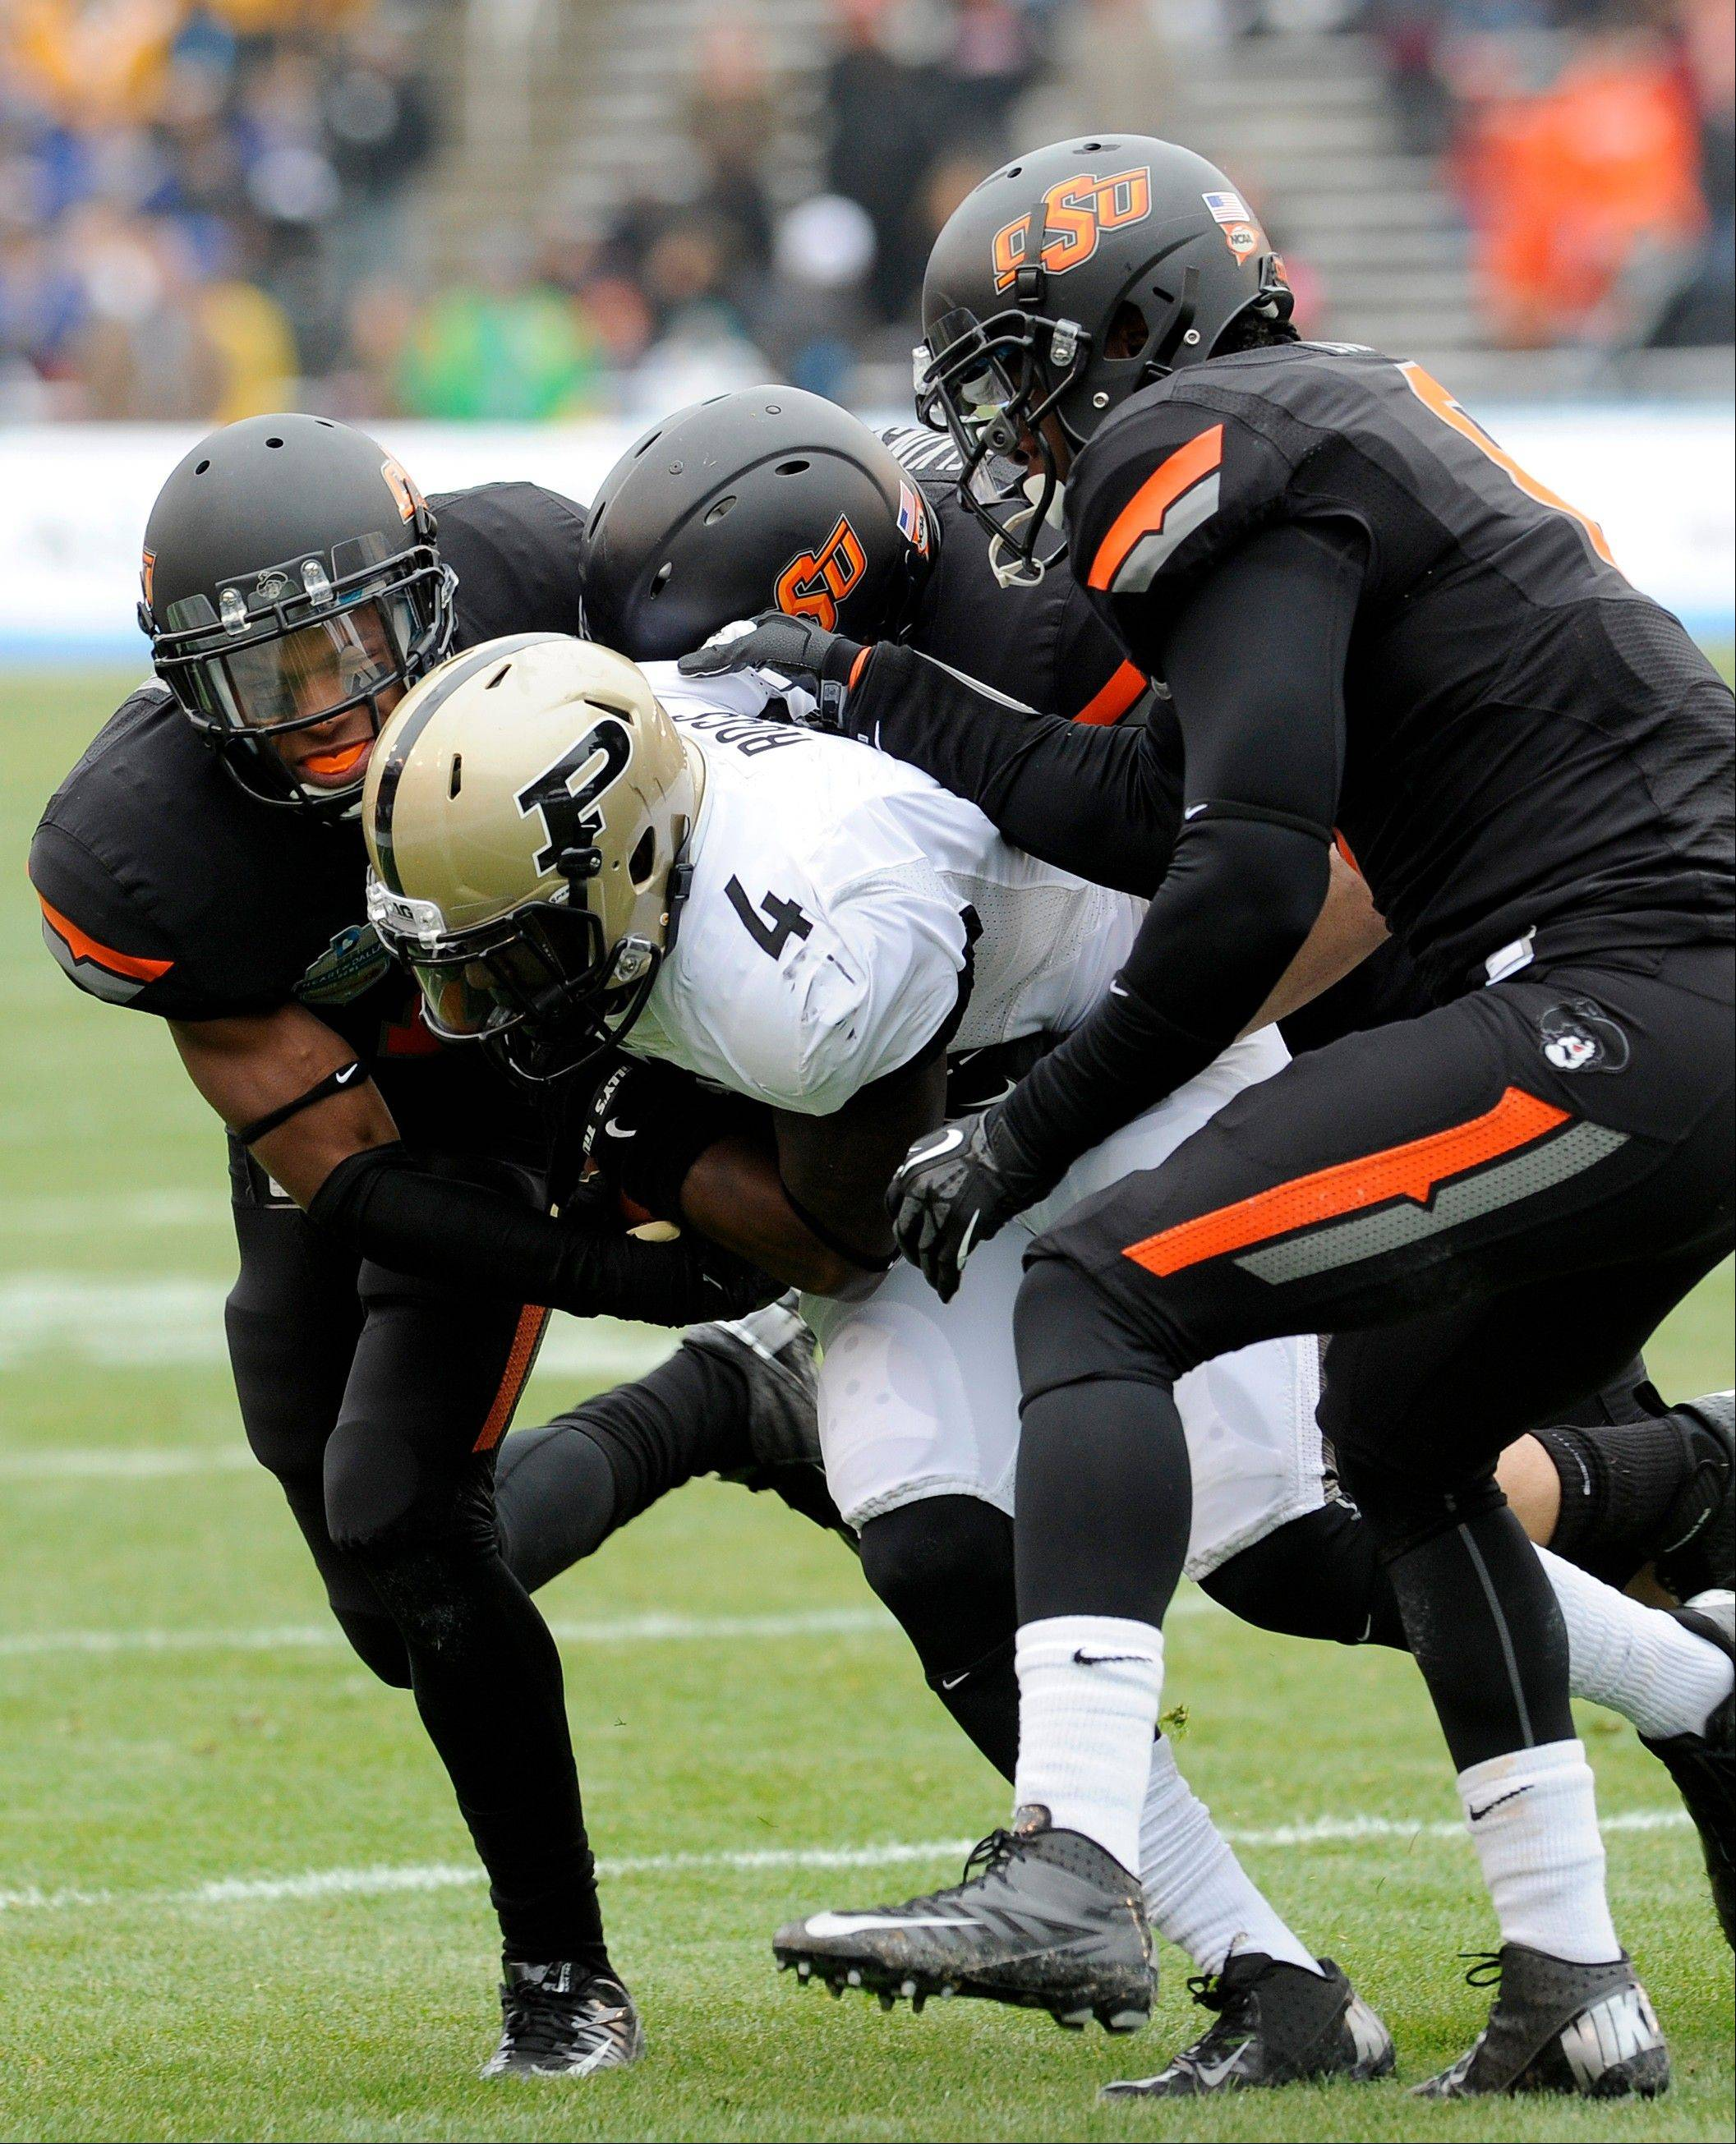 From left, Oklahoma State cornerback Kevin Peterson, linebacker Alex Elkins and safety Daytawion Lowe tackle Purdue wide receiver O.J. Ross (4) in the first half of the Heart of Dallas Bowl NCAA college football game, Tuesday, Jan. 1, 2013,in Dallas.